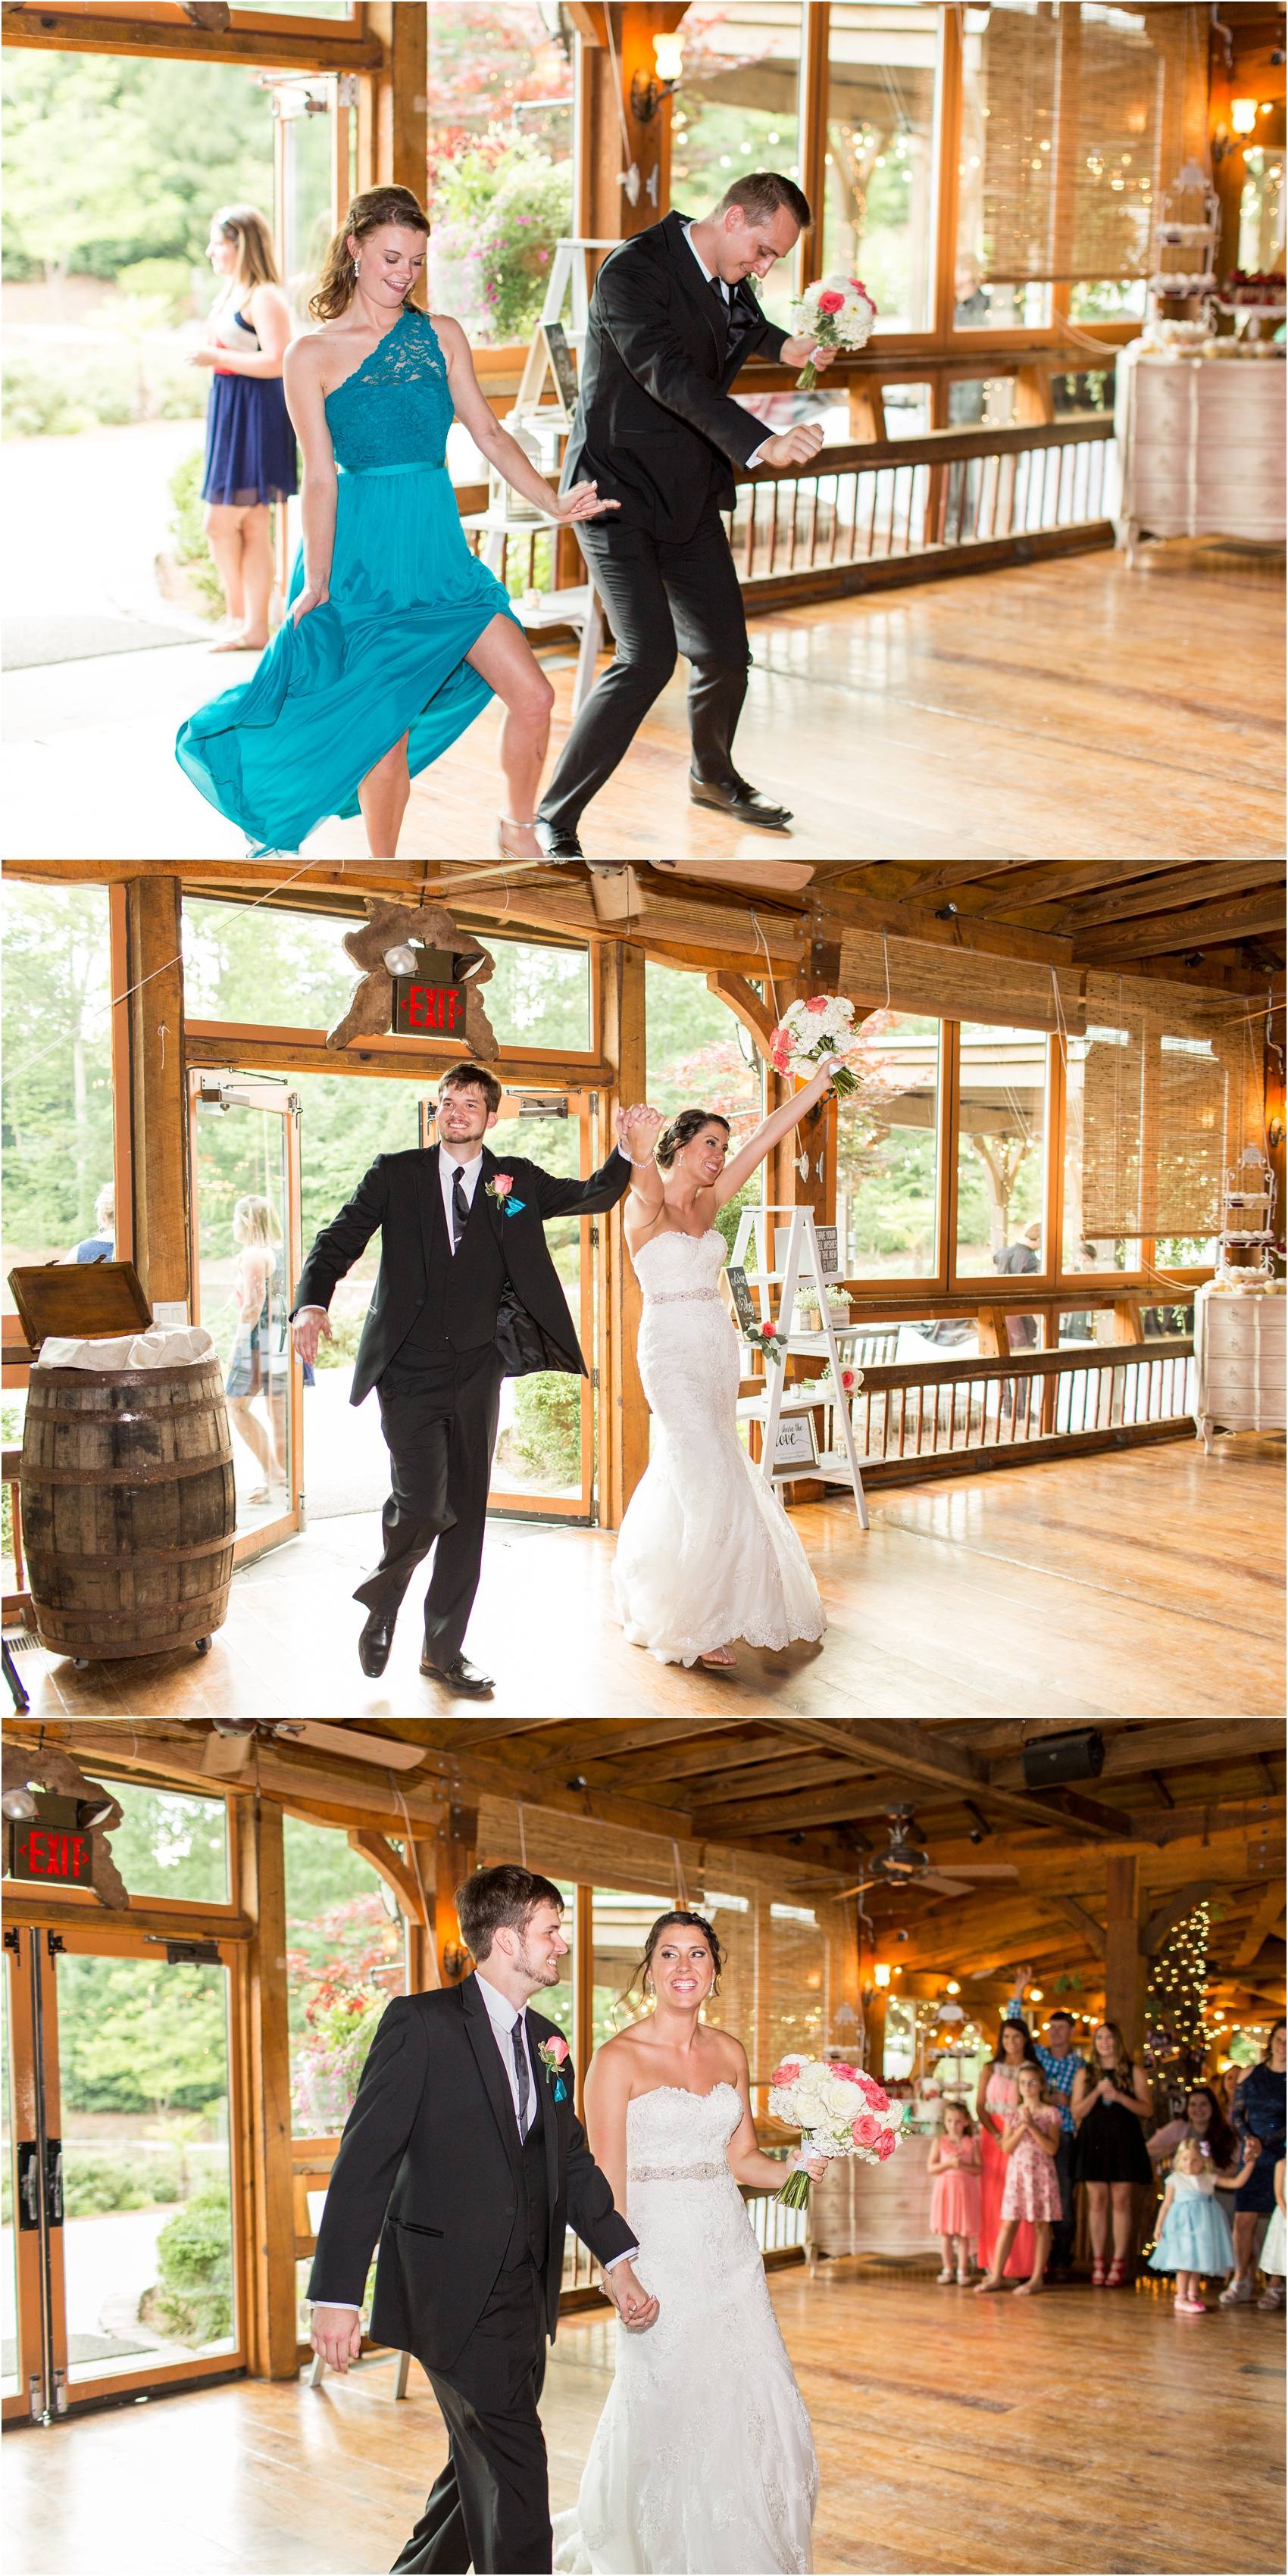 Savannah Eve Photography- Roberts-Brown Wedding- Sneak Peek-87.jpg